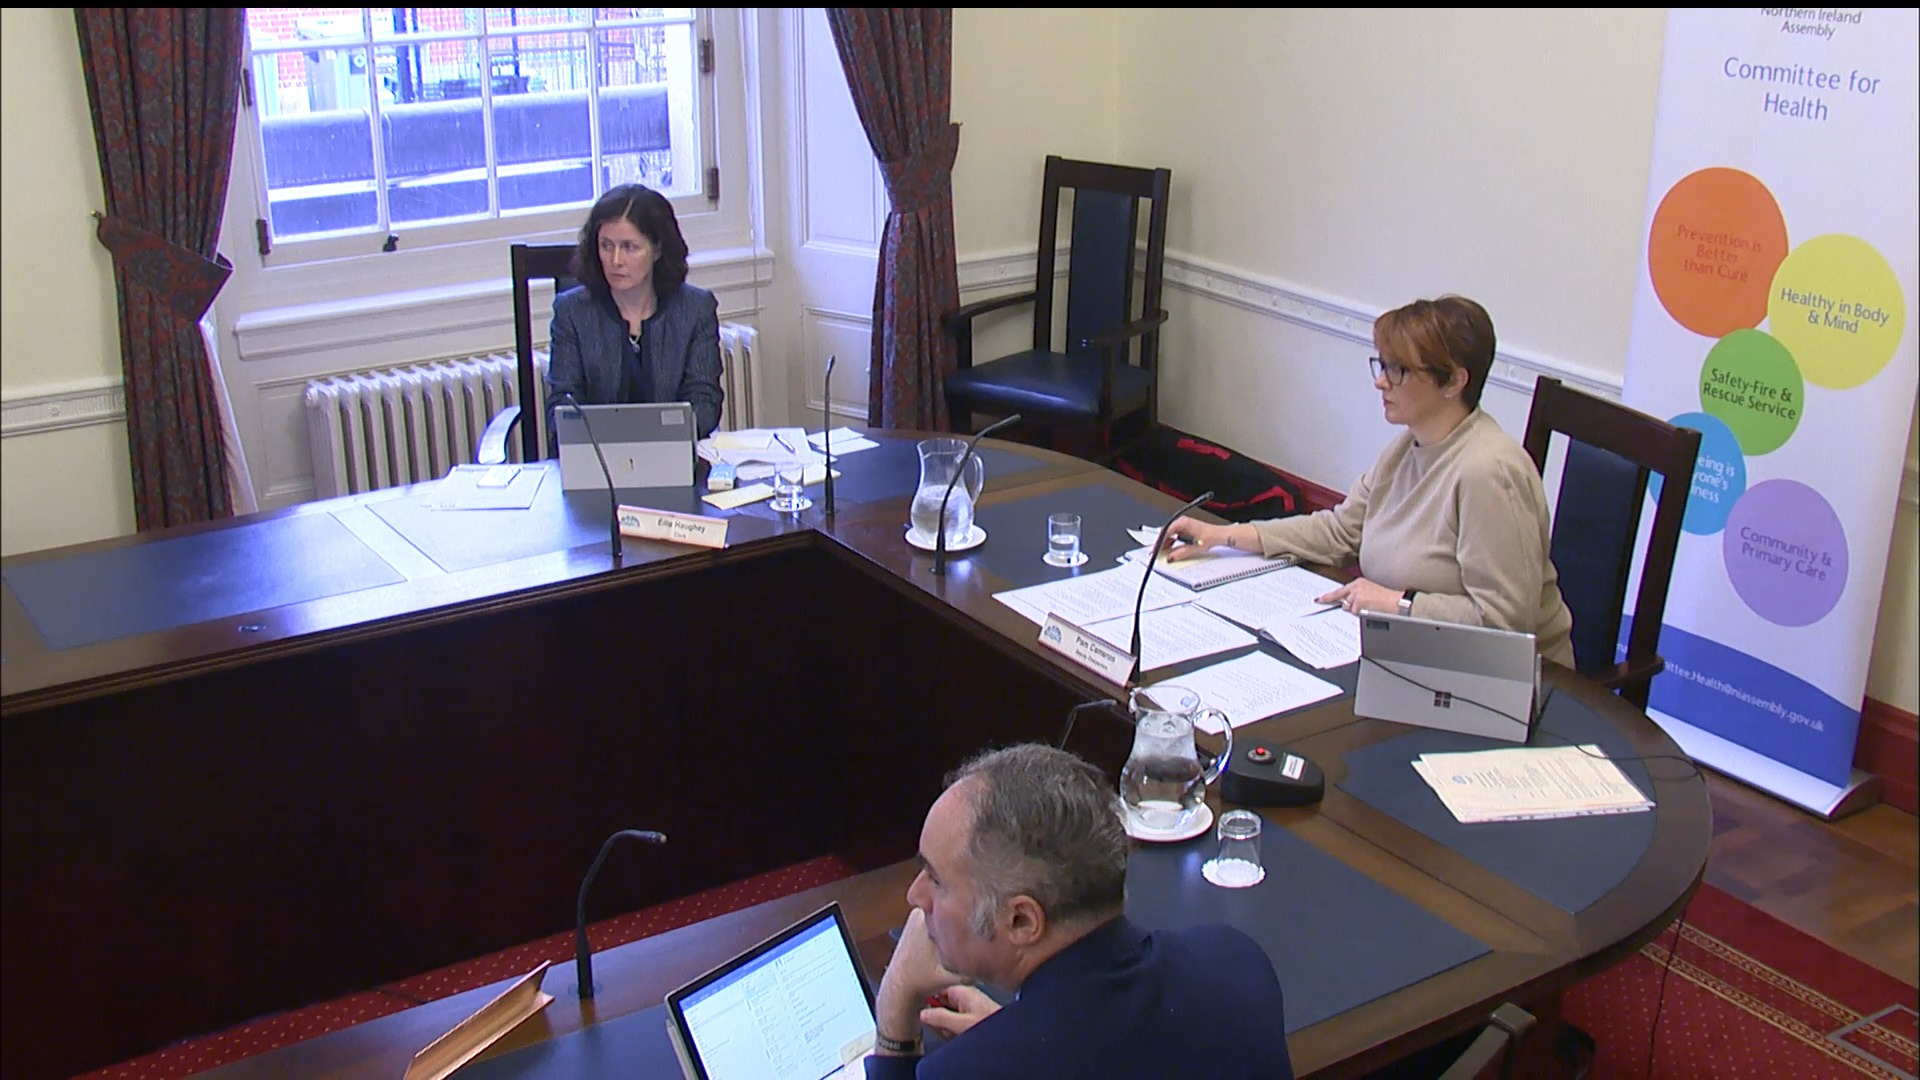 Committee for Health Meeting Thursday 26 March 2020